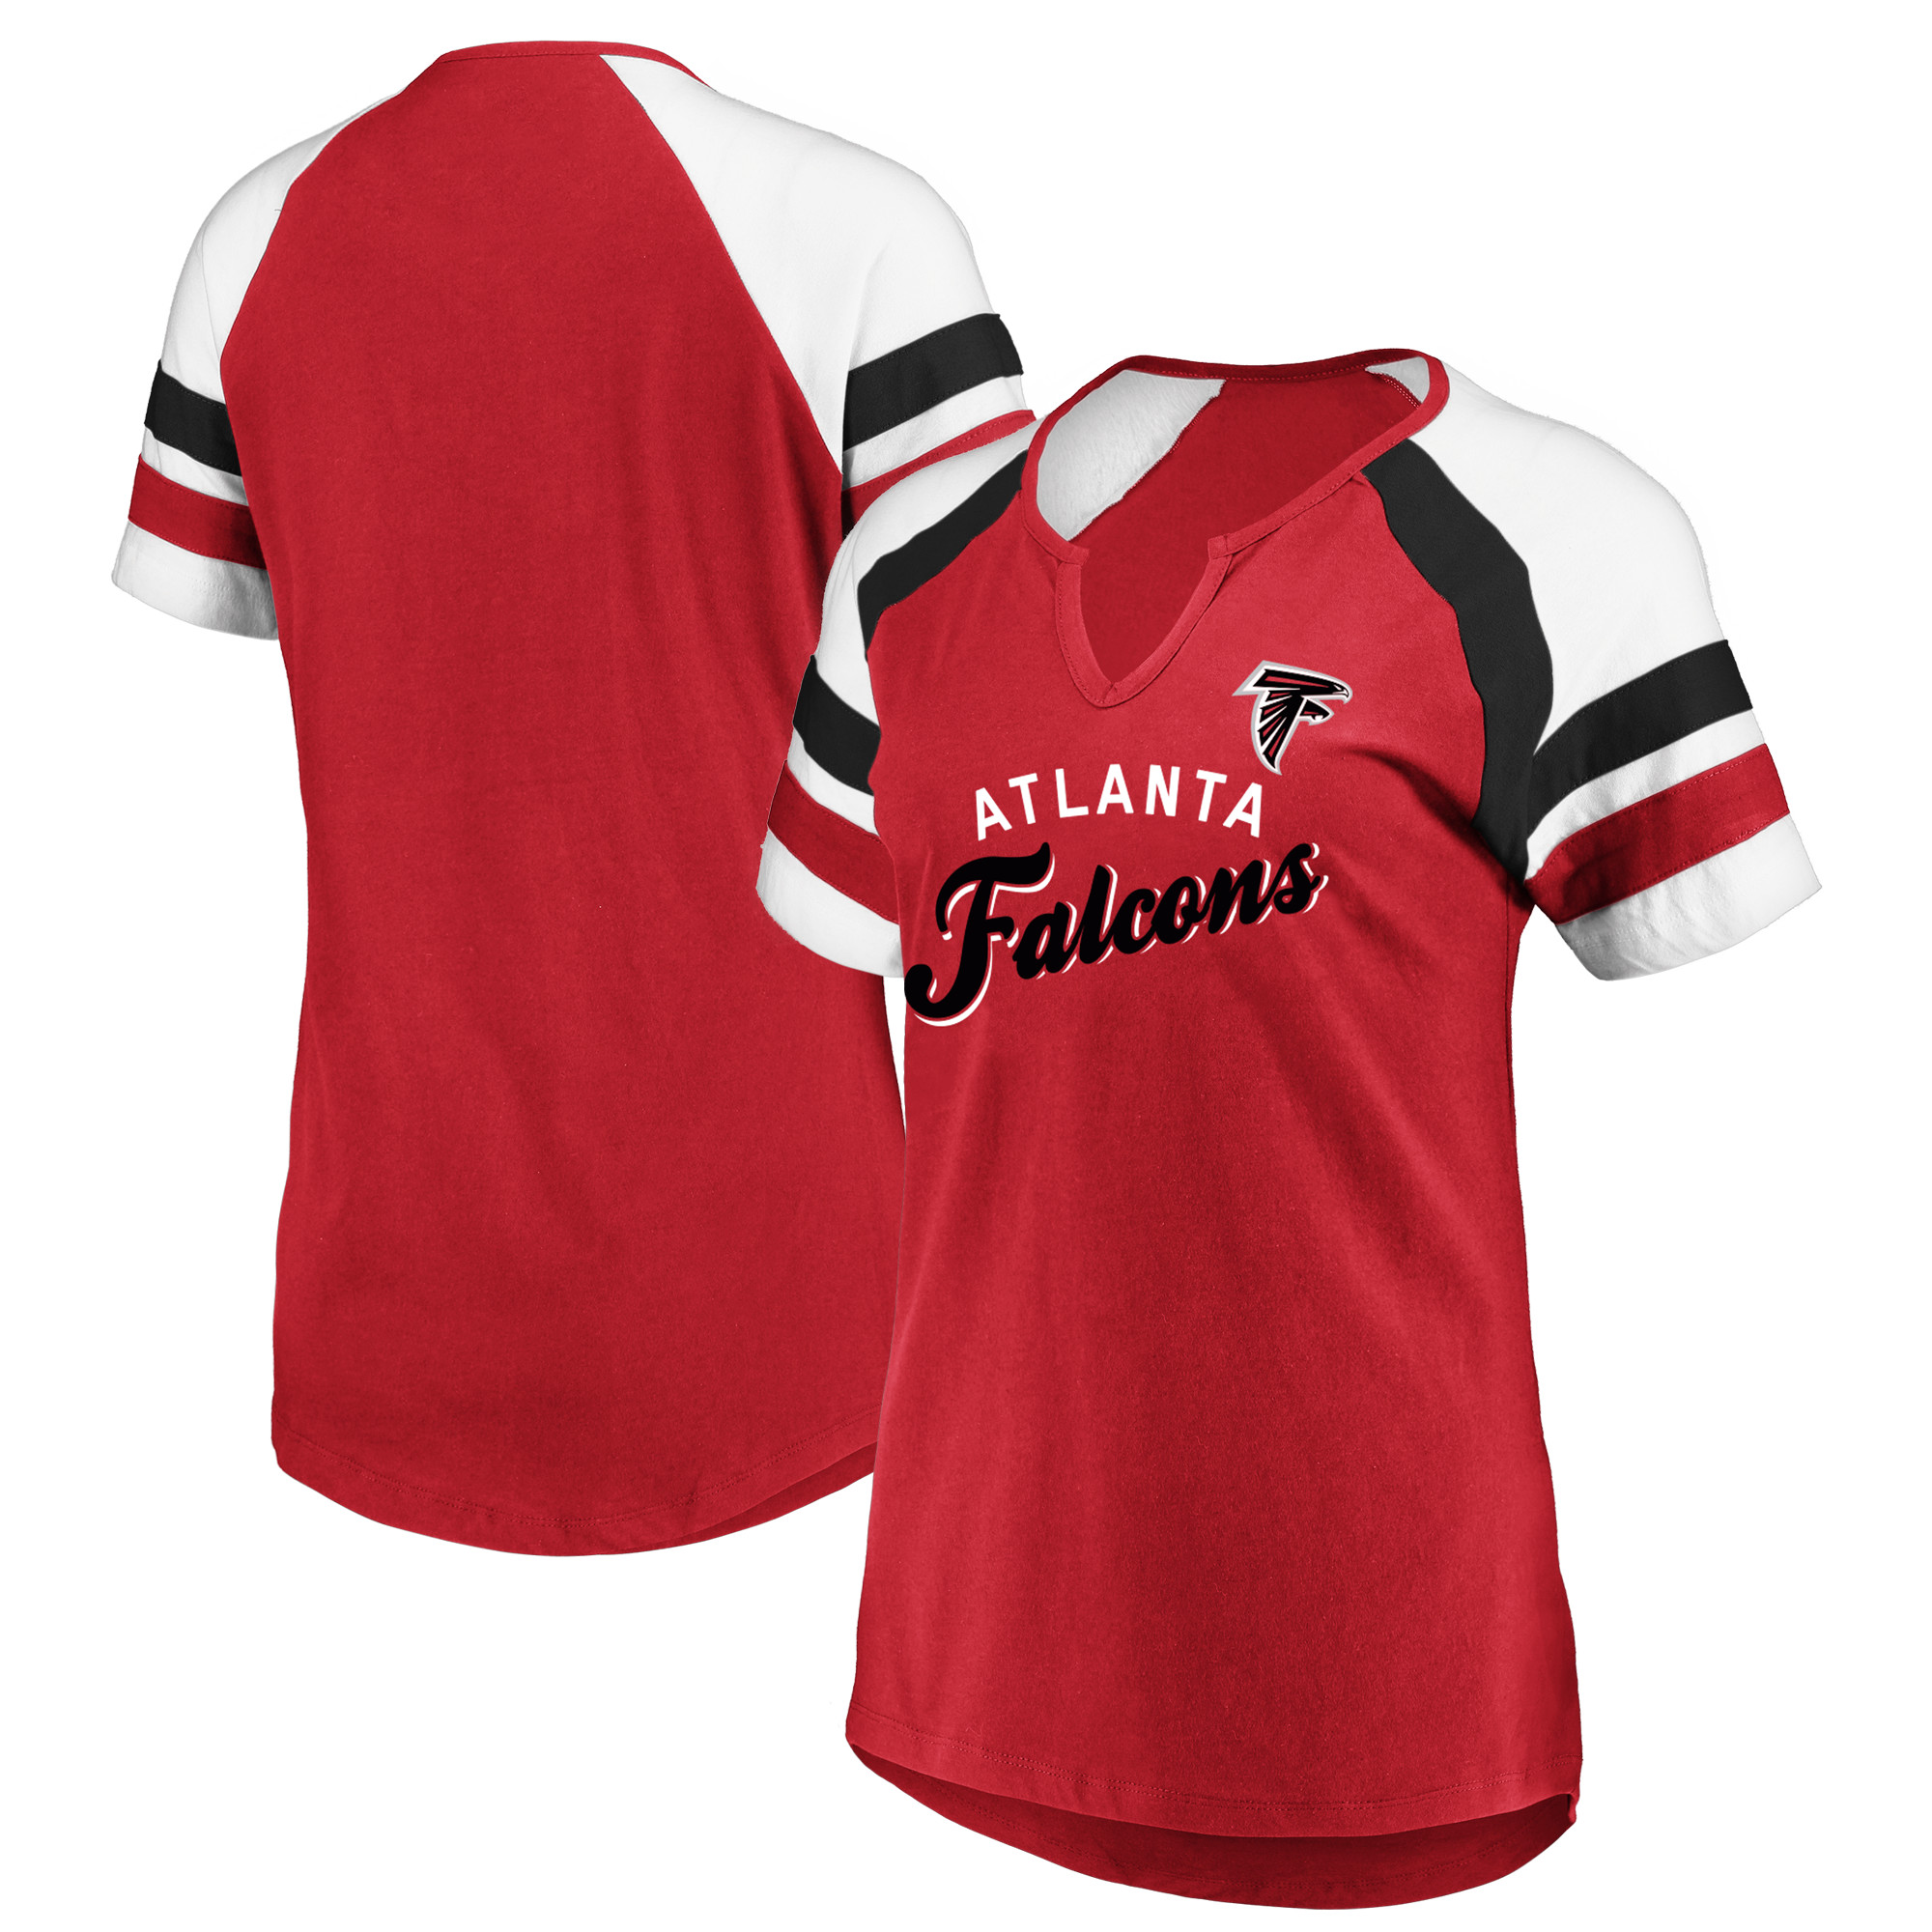 Women's Majestic Red/White Atlanta Falcons Defensive Victory V-Notch T-Shirt